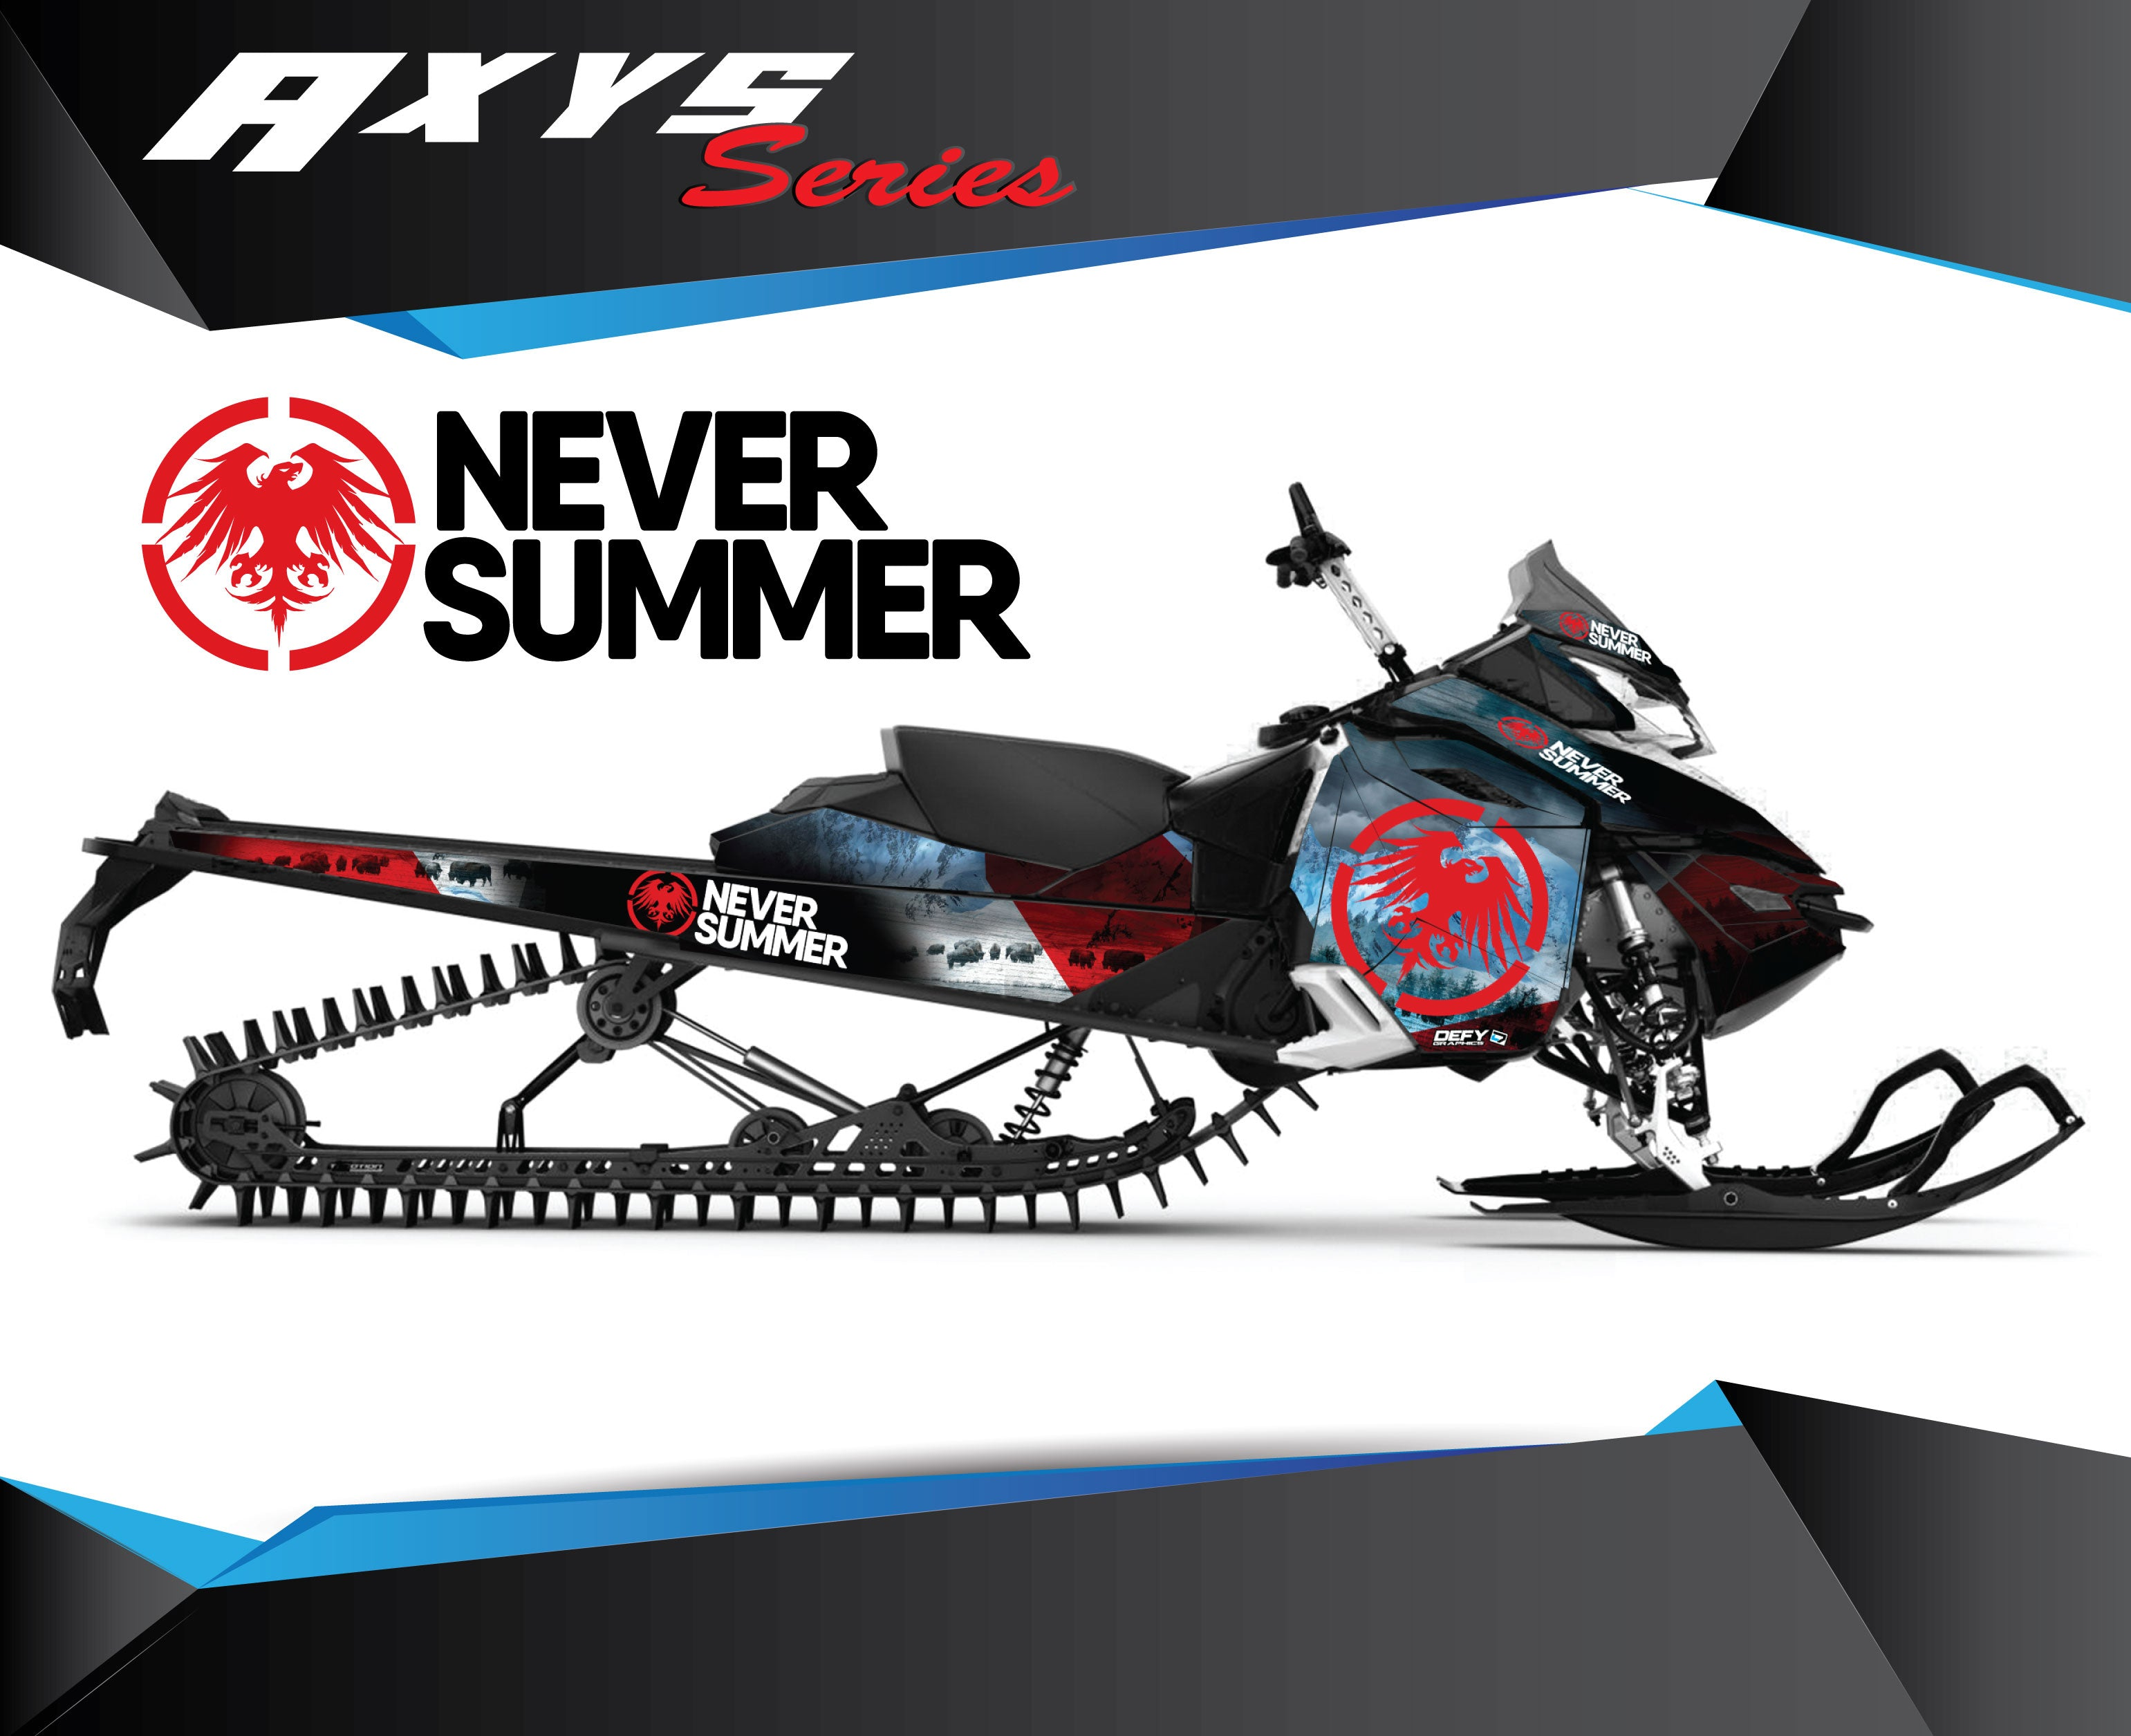 Never Summer AXYS SERIES - Sled Kits